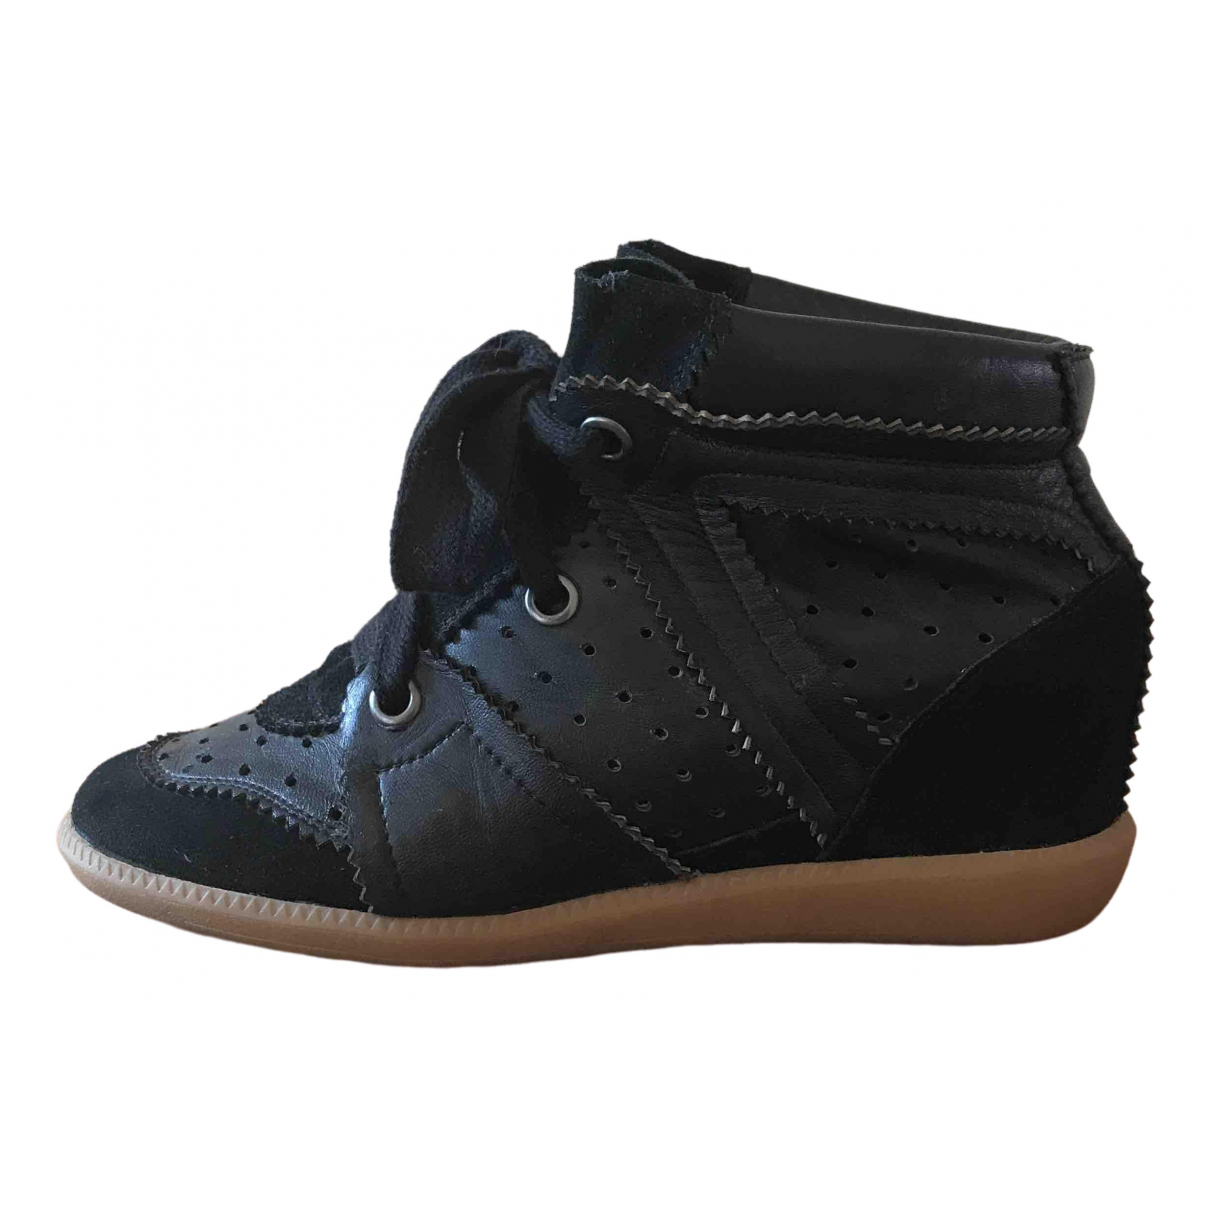 Isabel Marant Betty Black Leather Trainers for Women 38 EU